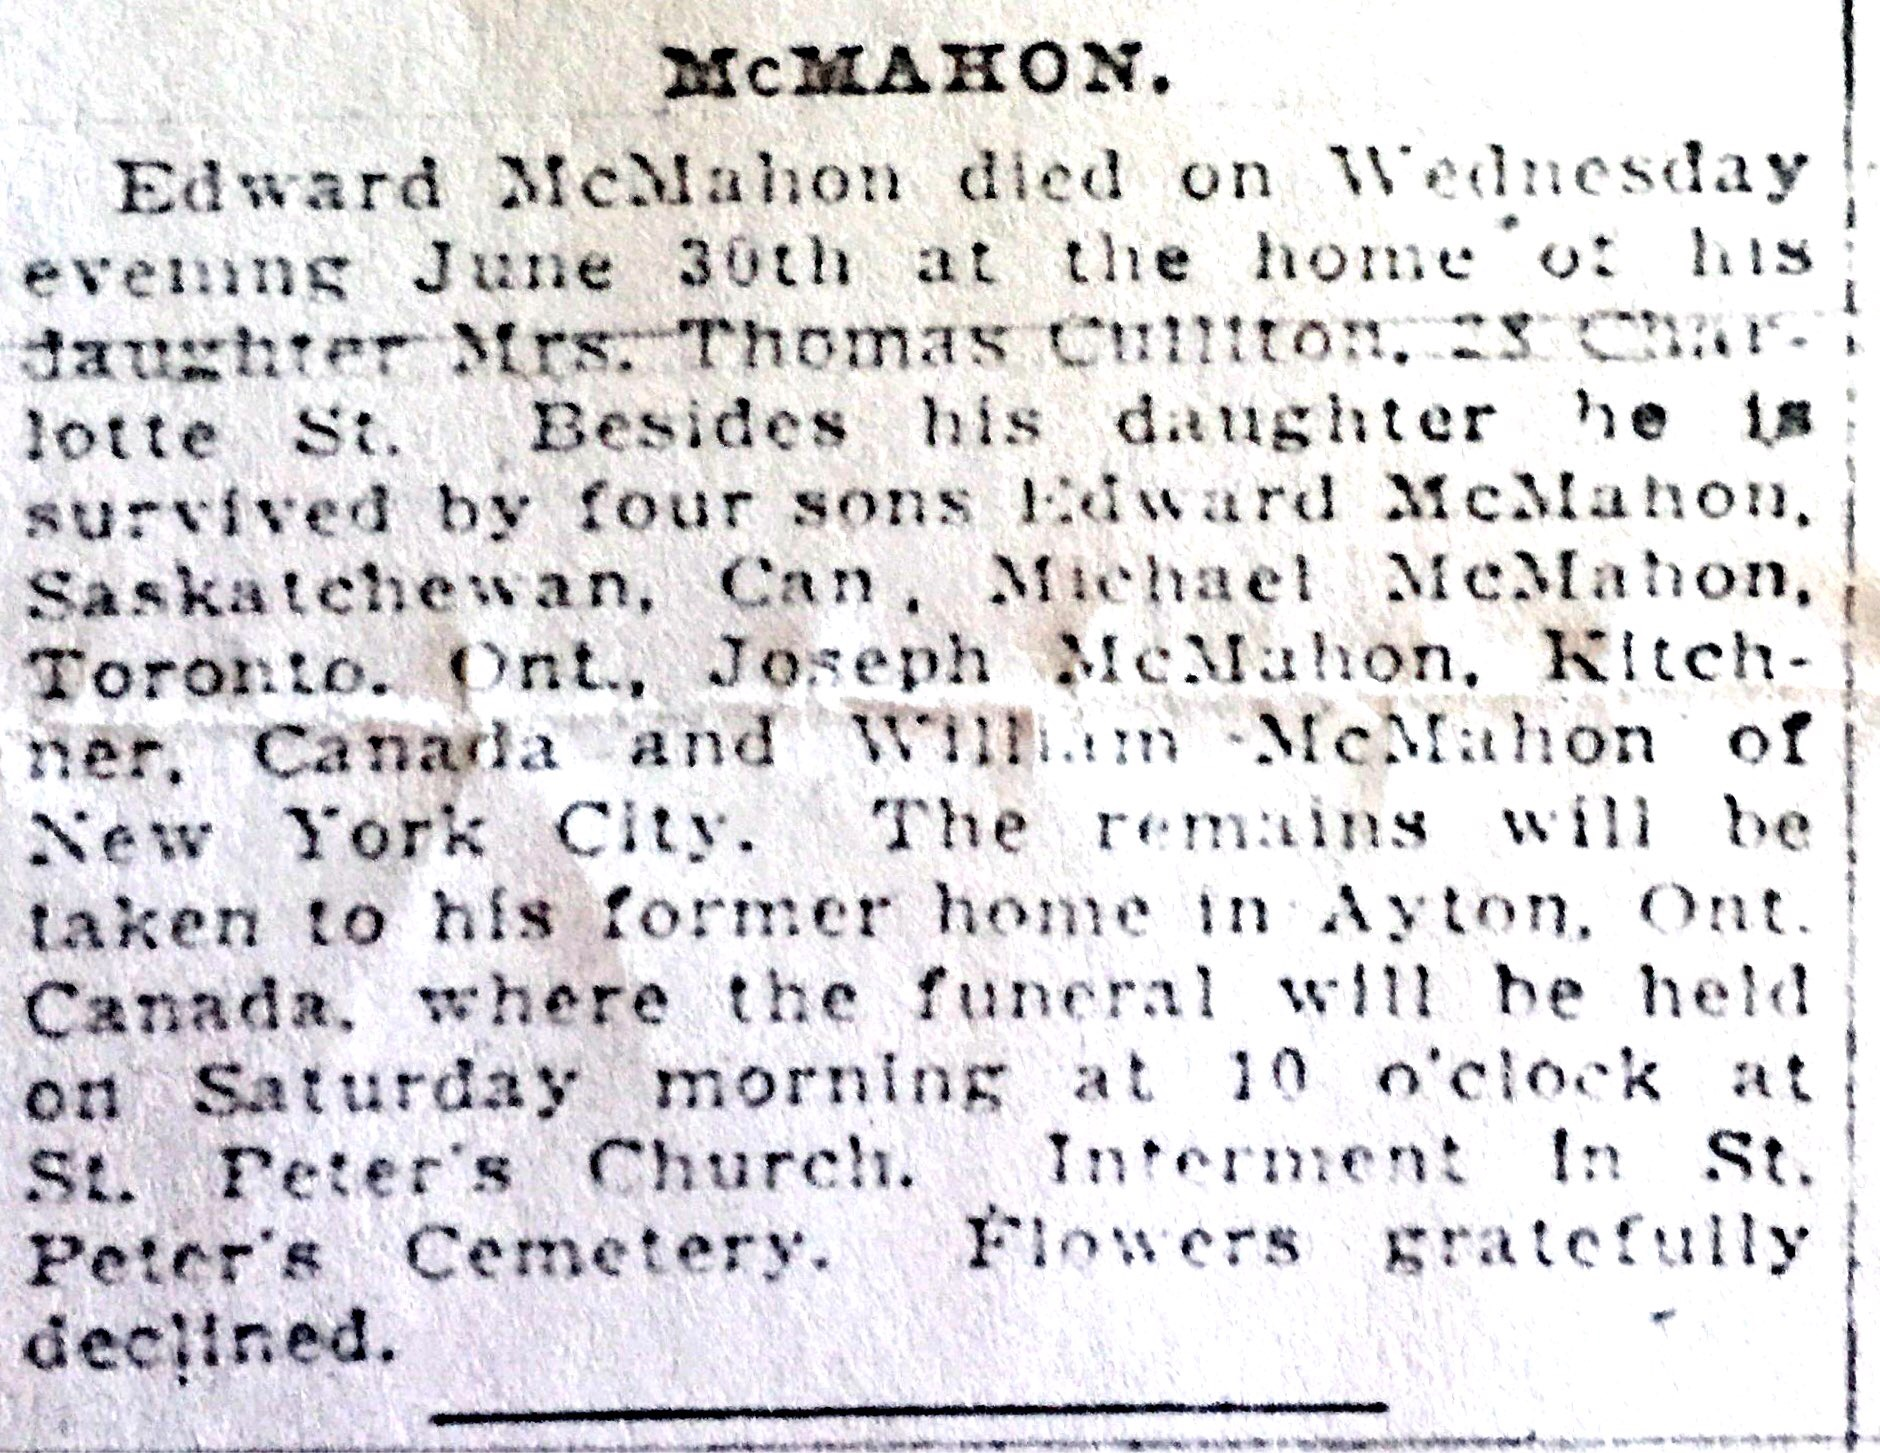 MCMAHON, Edward obituary